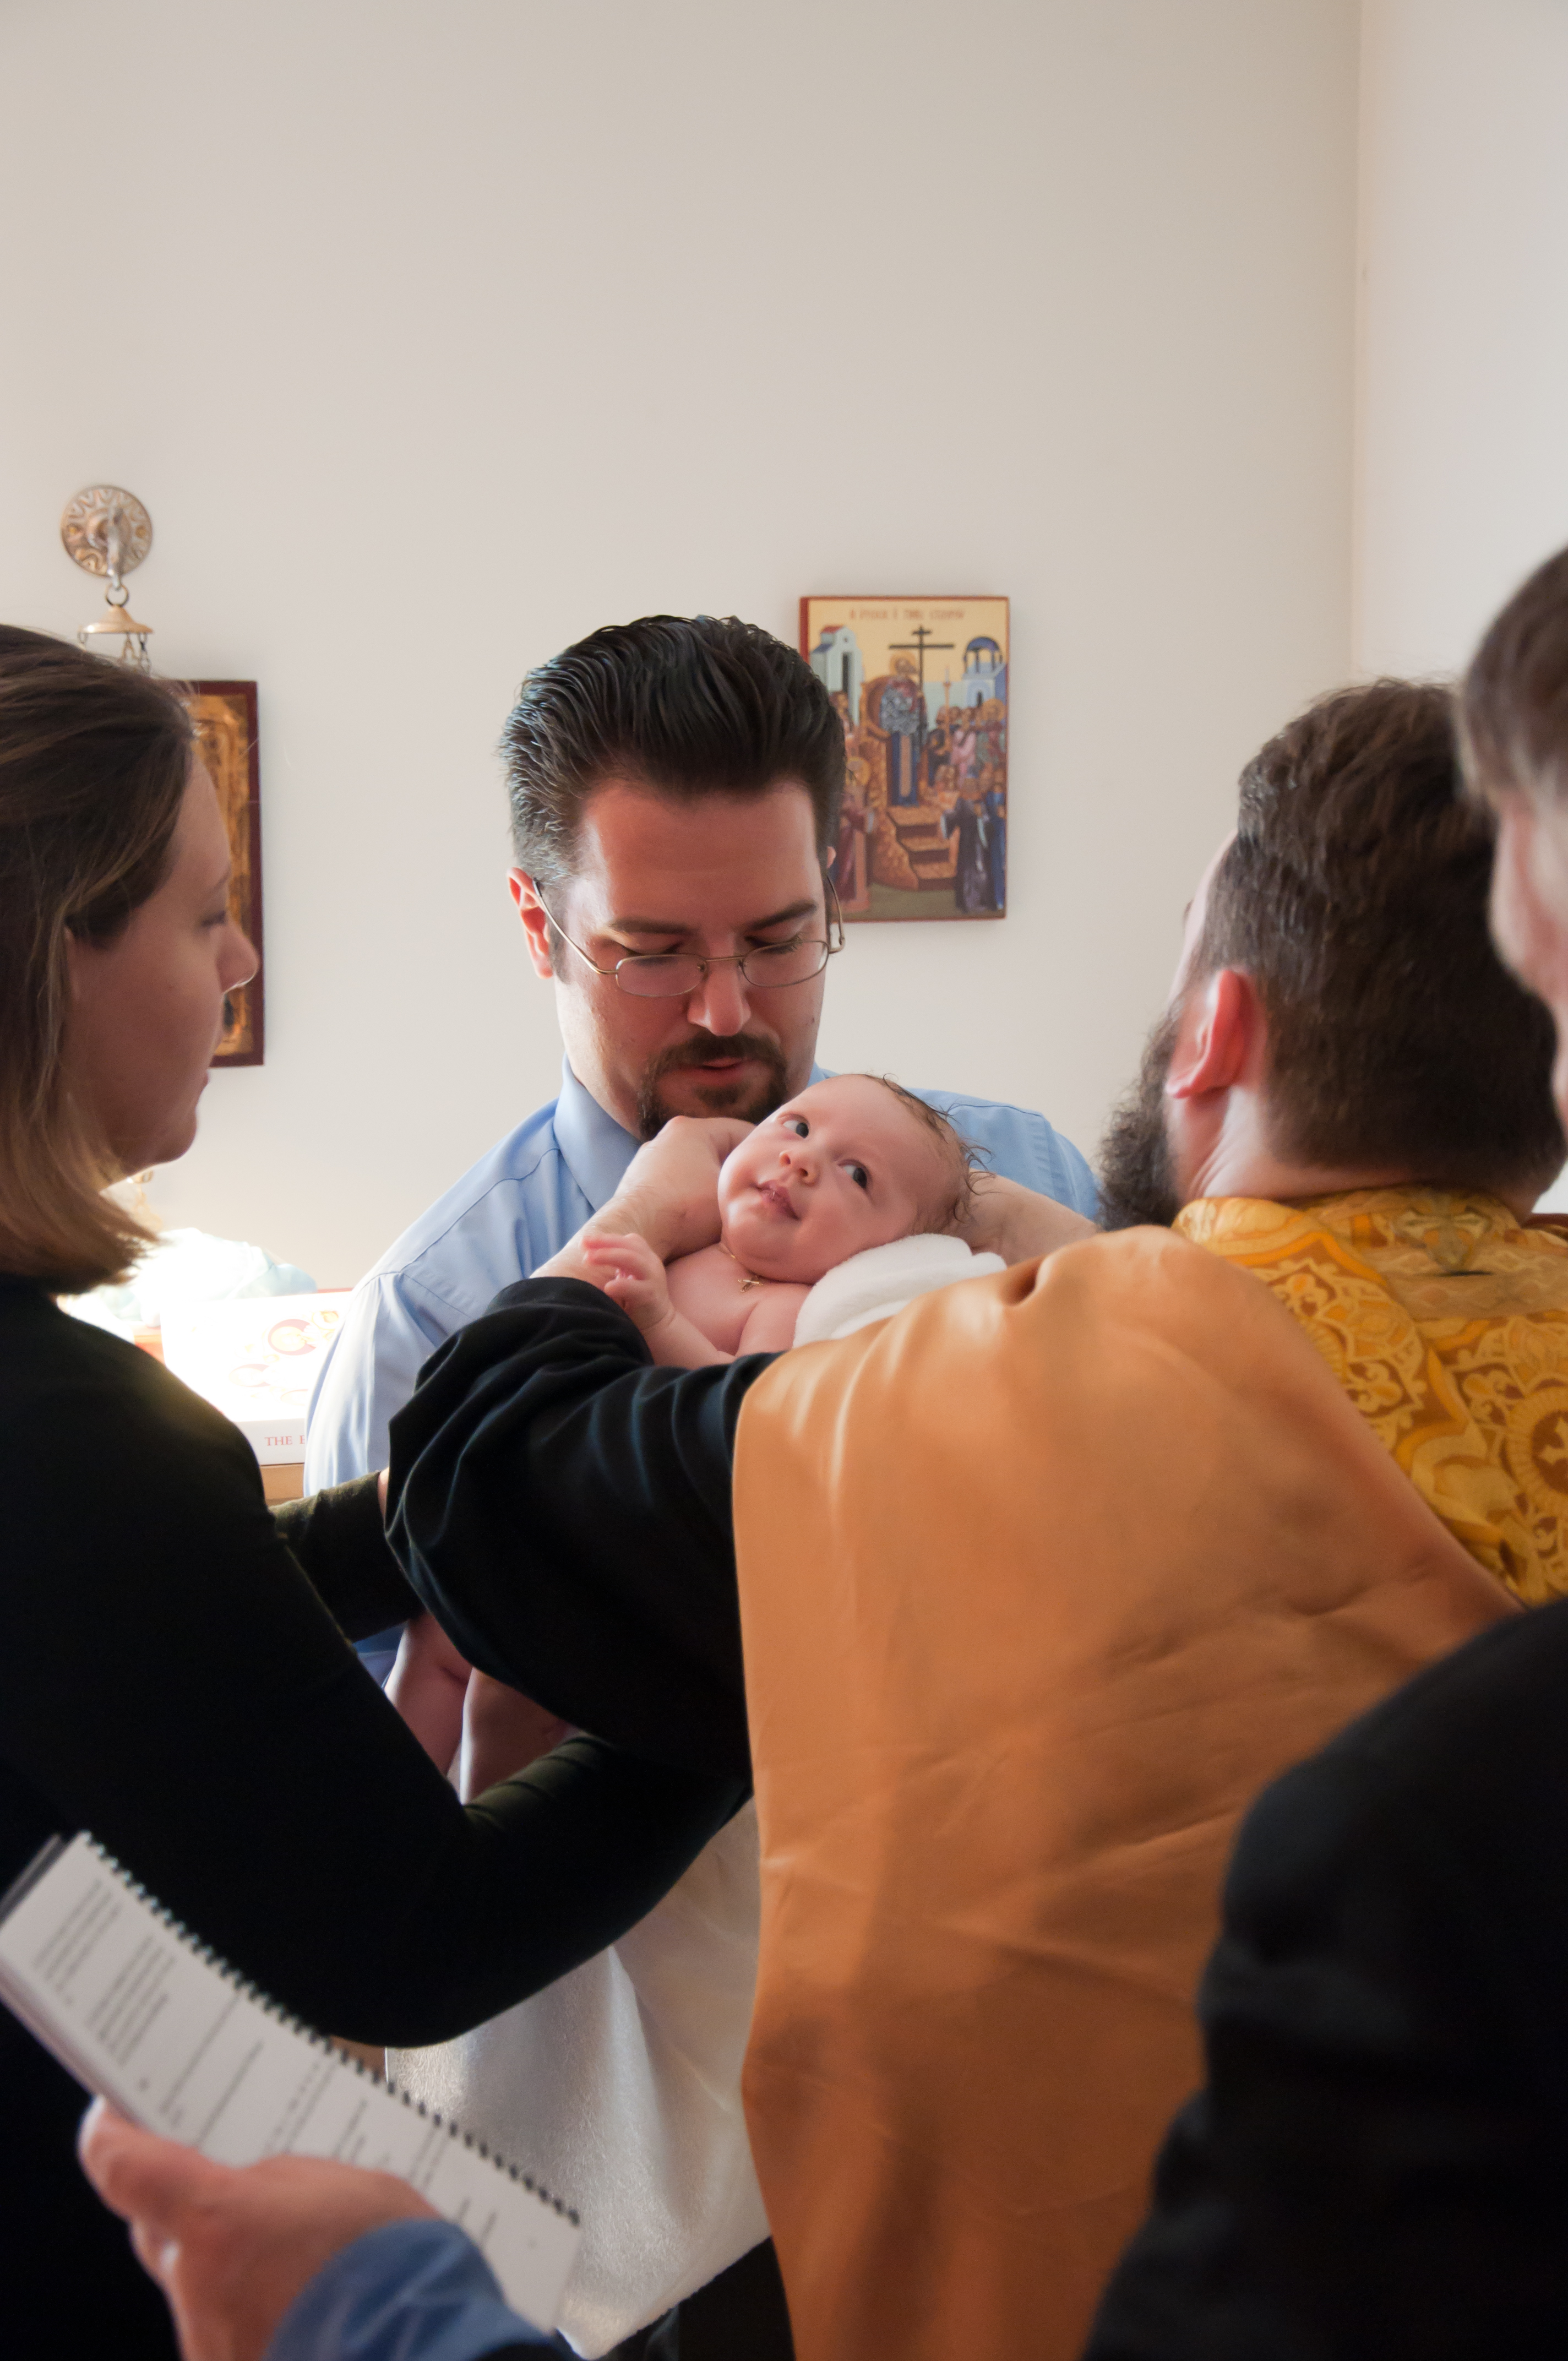 Putting the Cross on the Newly-Baptized